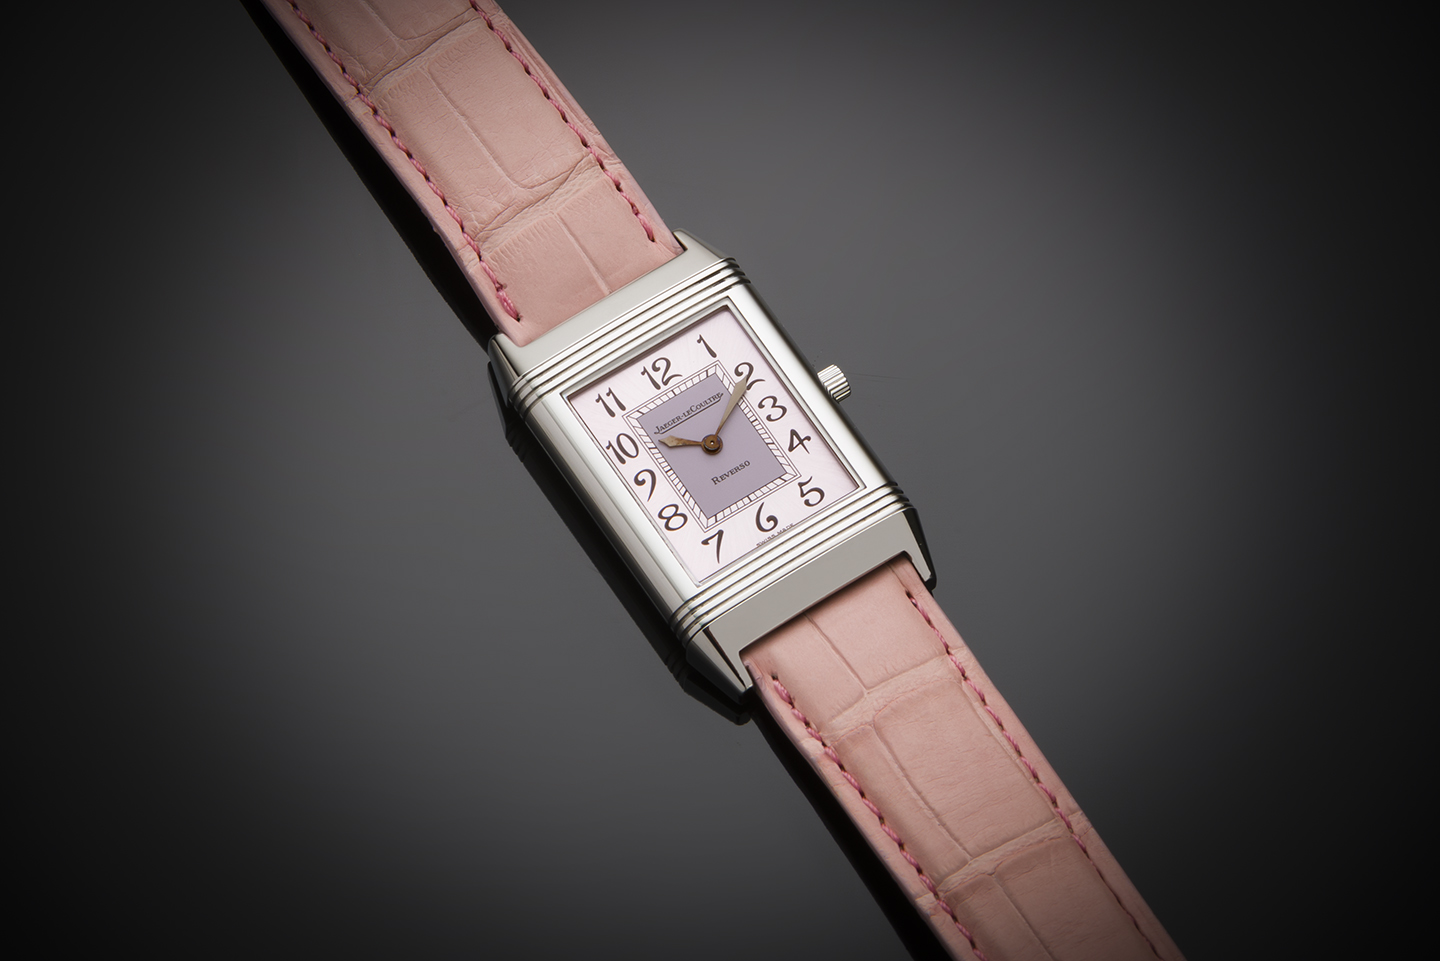 Jaeger LeCoultre Reverso classic watch-1